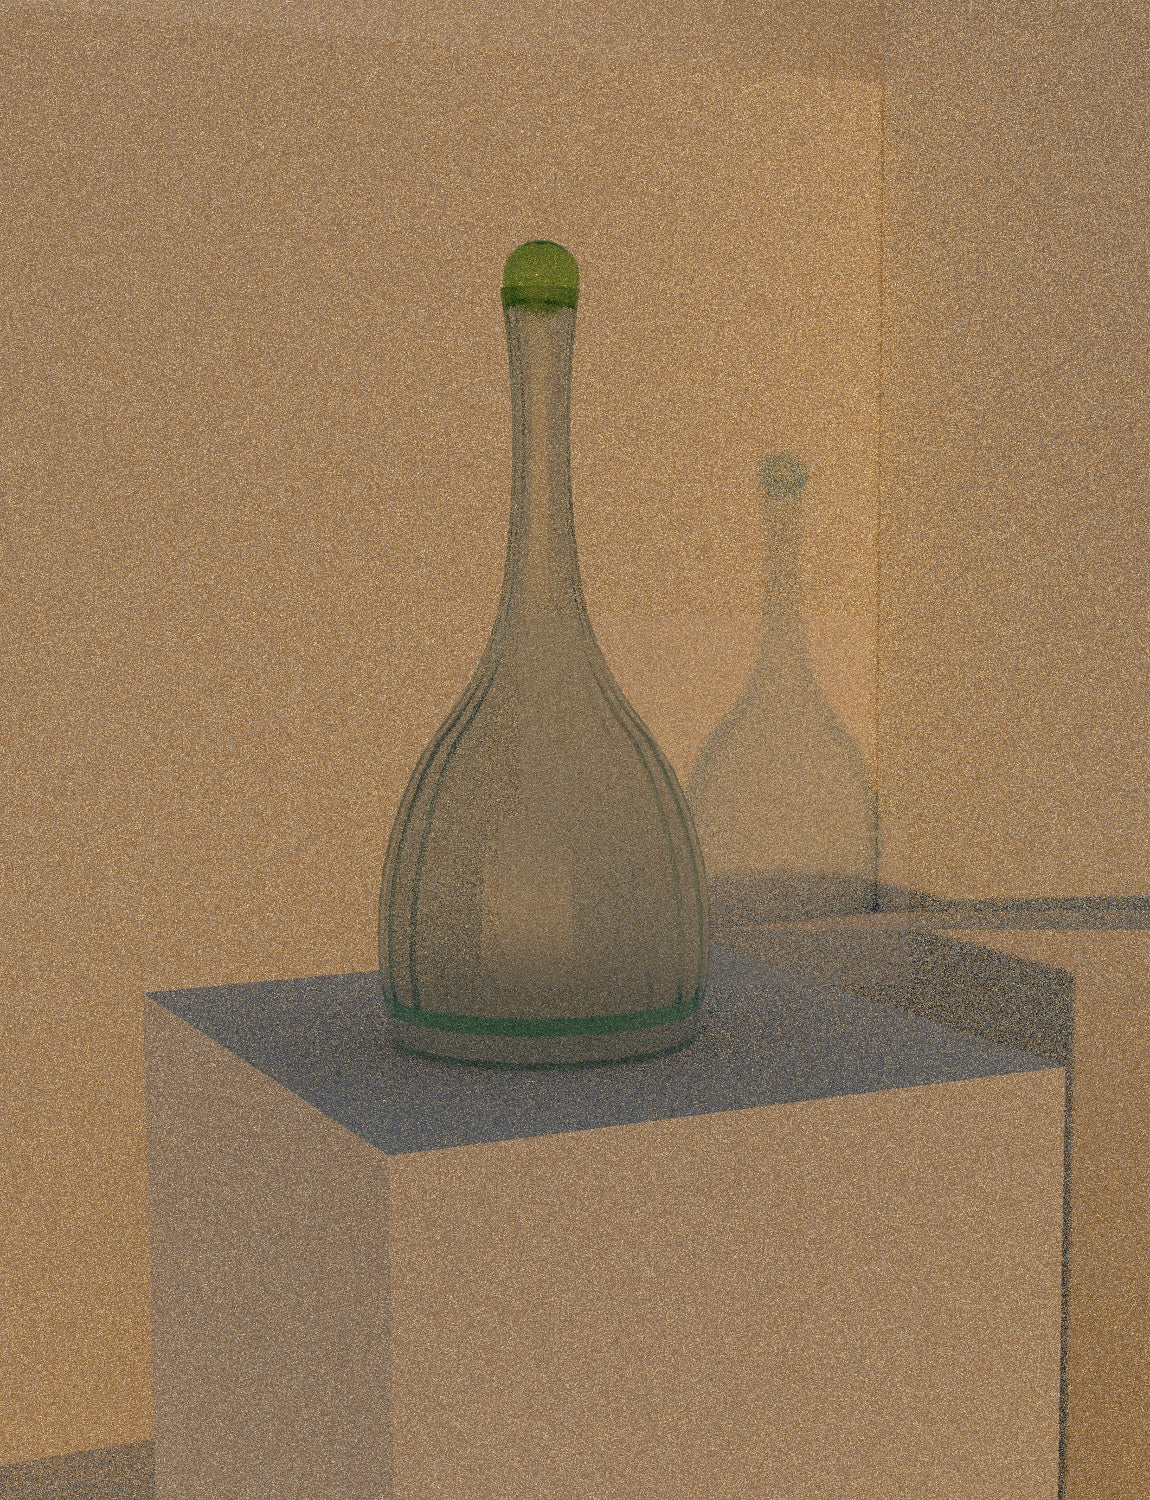 L'Atelier du Vin Decanter with Green Top